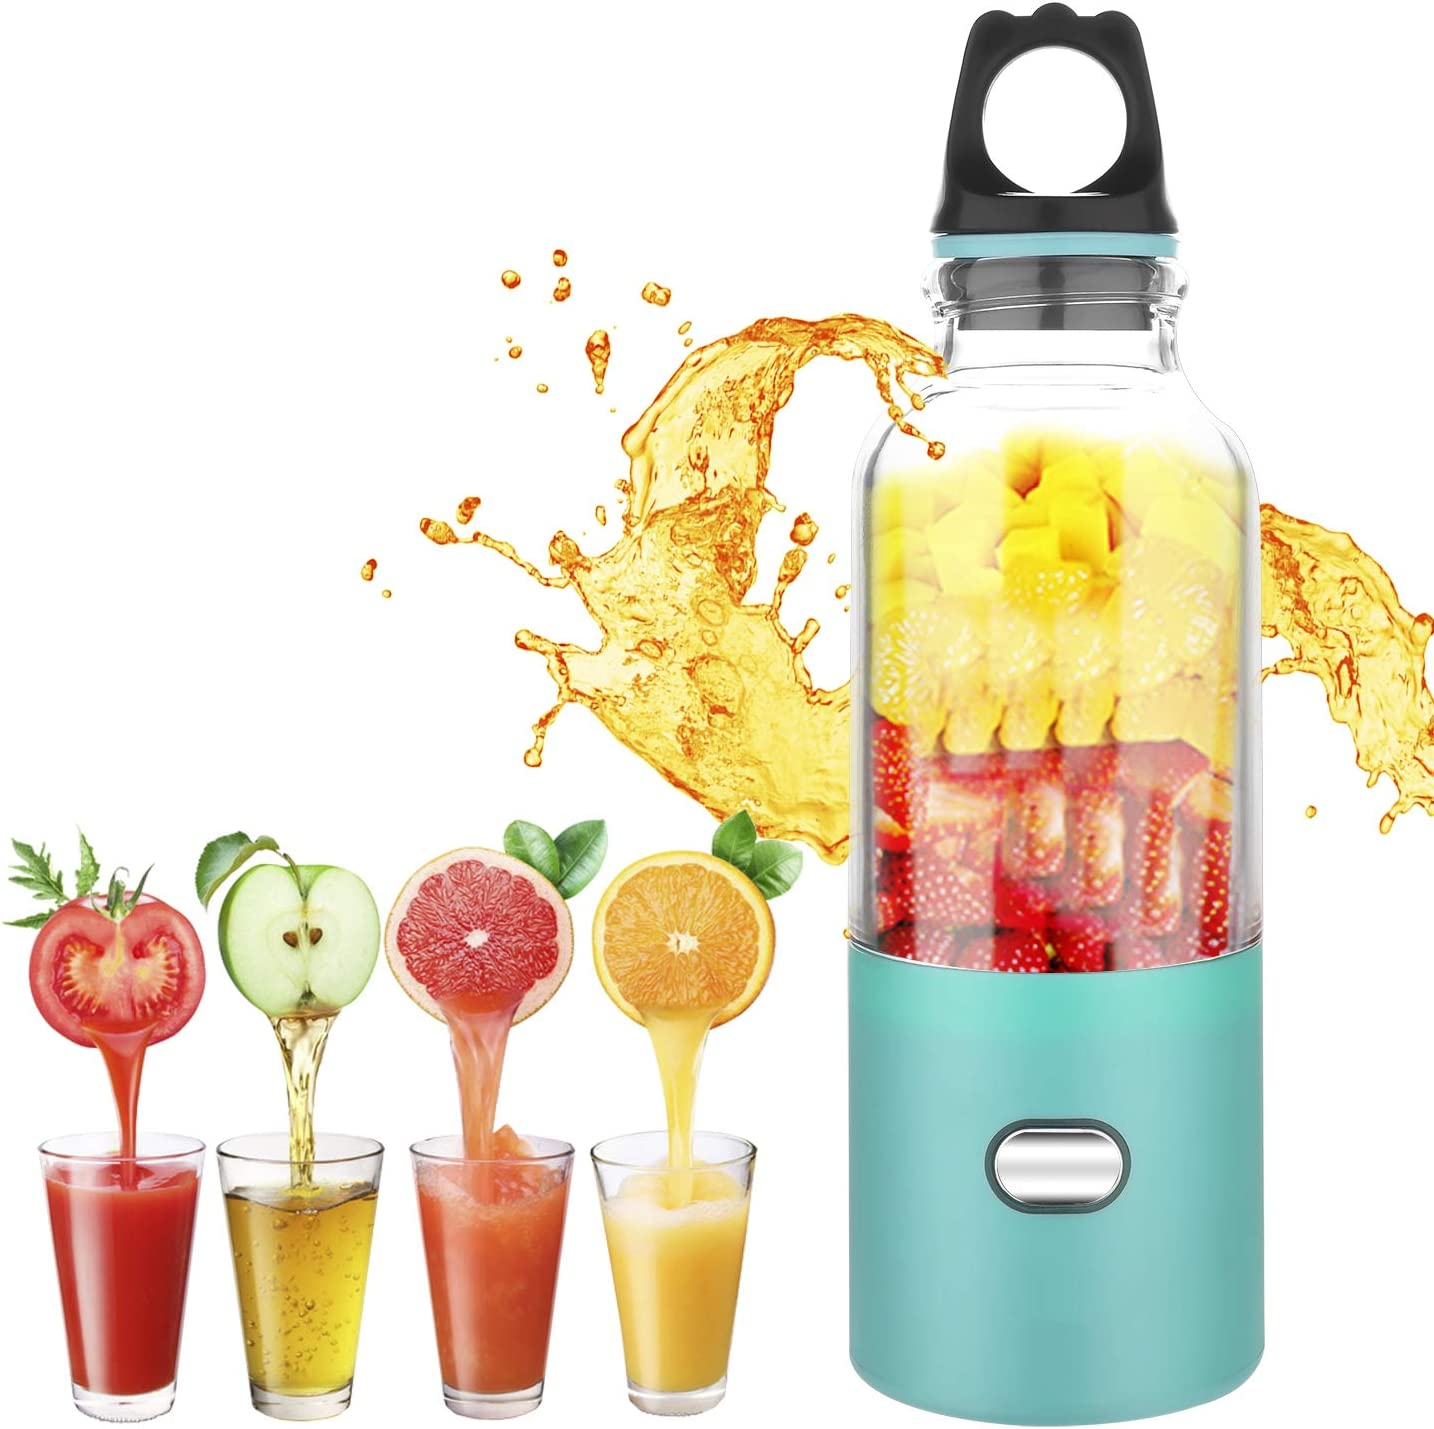 Portable Juicer Blender, XBrands Mini Travel Blender,USB Rechargeable Juicer Cup,Household Fruit Mixer, Personal Size Mixing Machine with Six Blades, Small Size Easy to Carry – Small Ice Cubes Become Smaller